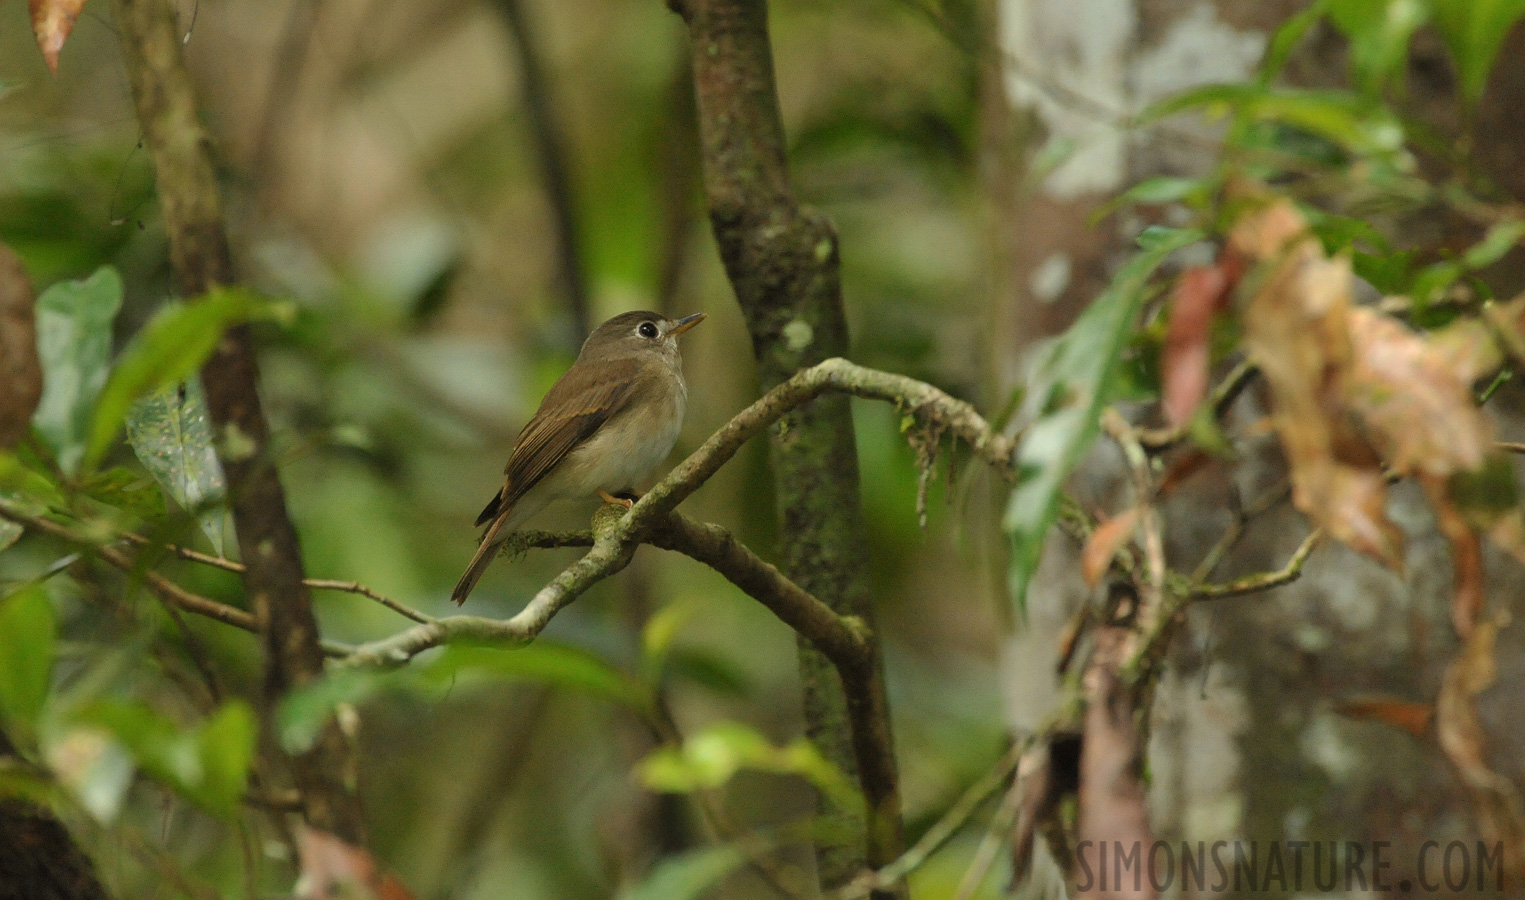 Brown-breasted flycatcher [Muscicapa muttui]